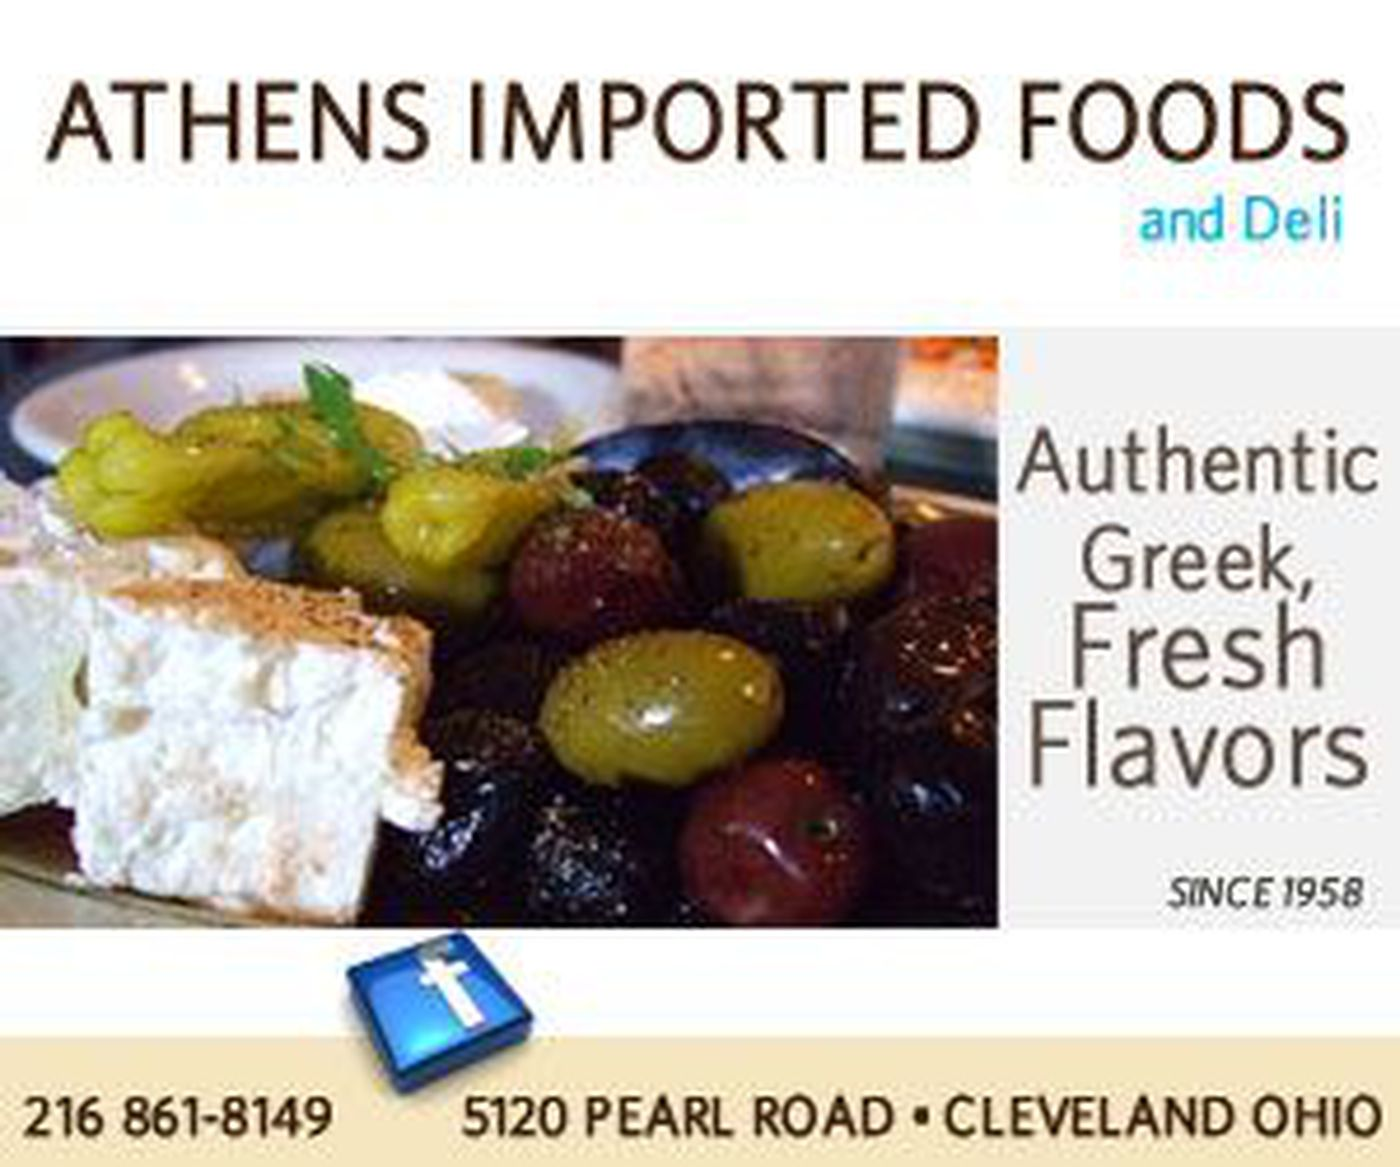 Athens Imported Foods